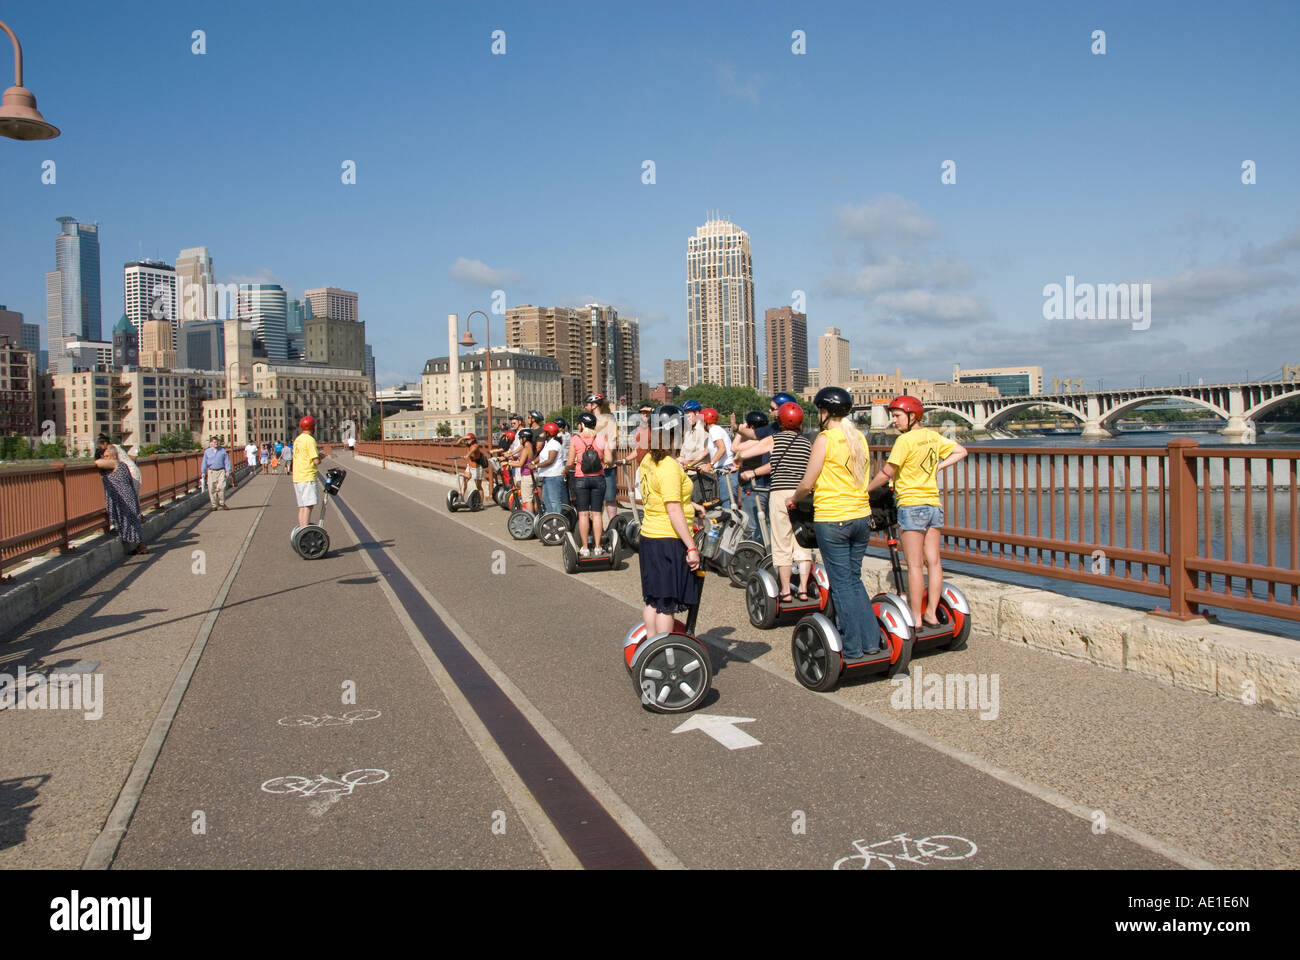 Segway riders Minnesota Twin Cities Minneapolis Saint Paul Stone Arch Bridge crosses Mississippi Minneapolis MN - Stock Image